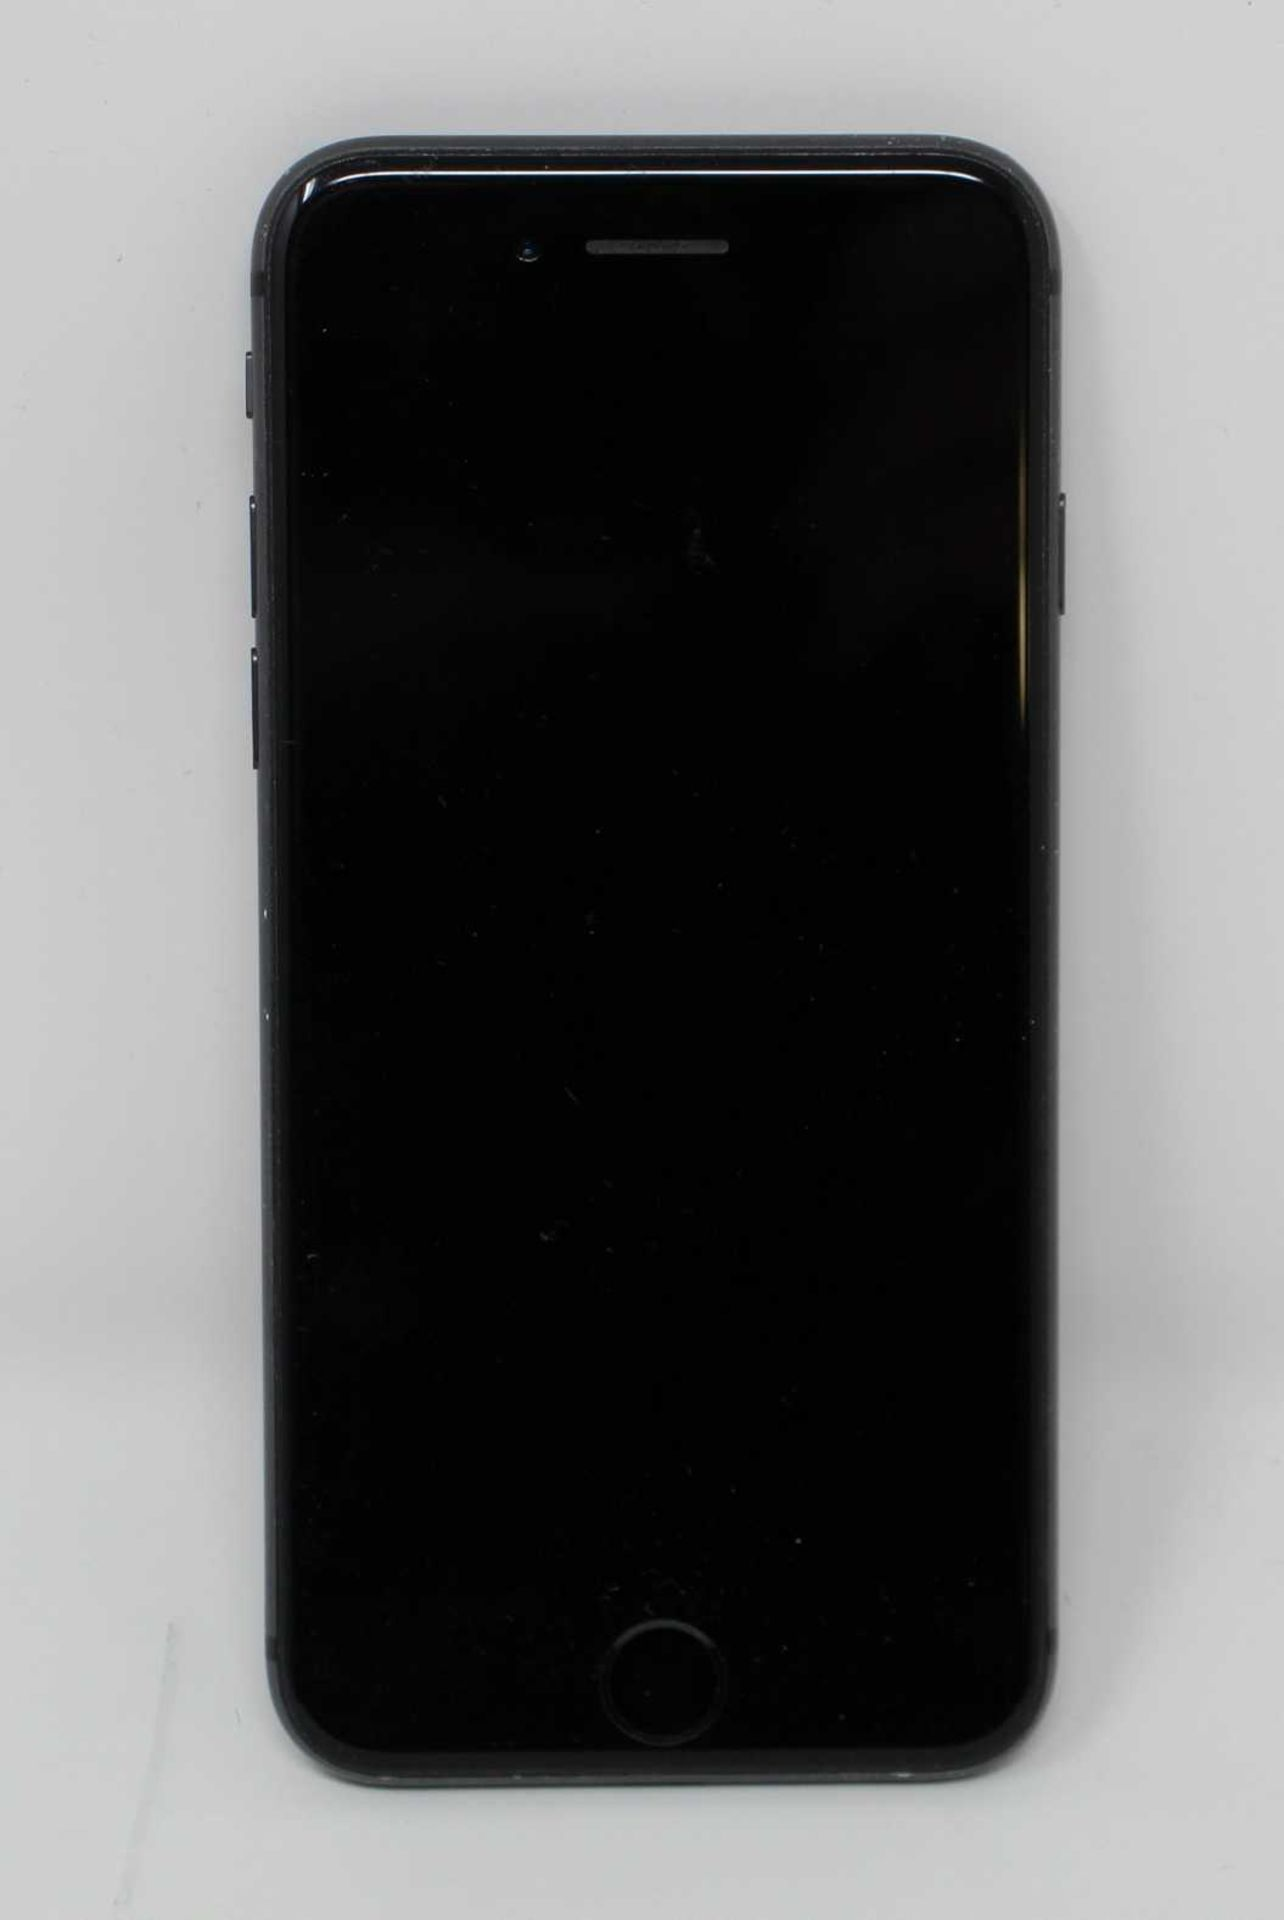 A pre-owned Apple iPhone 8 (AT&T/T-Mobile/Global/A1905) 64GB in Space Grey (iCloud activation clear, - Image 8 of 8